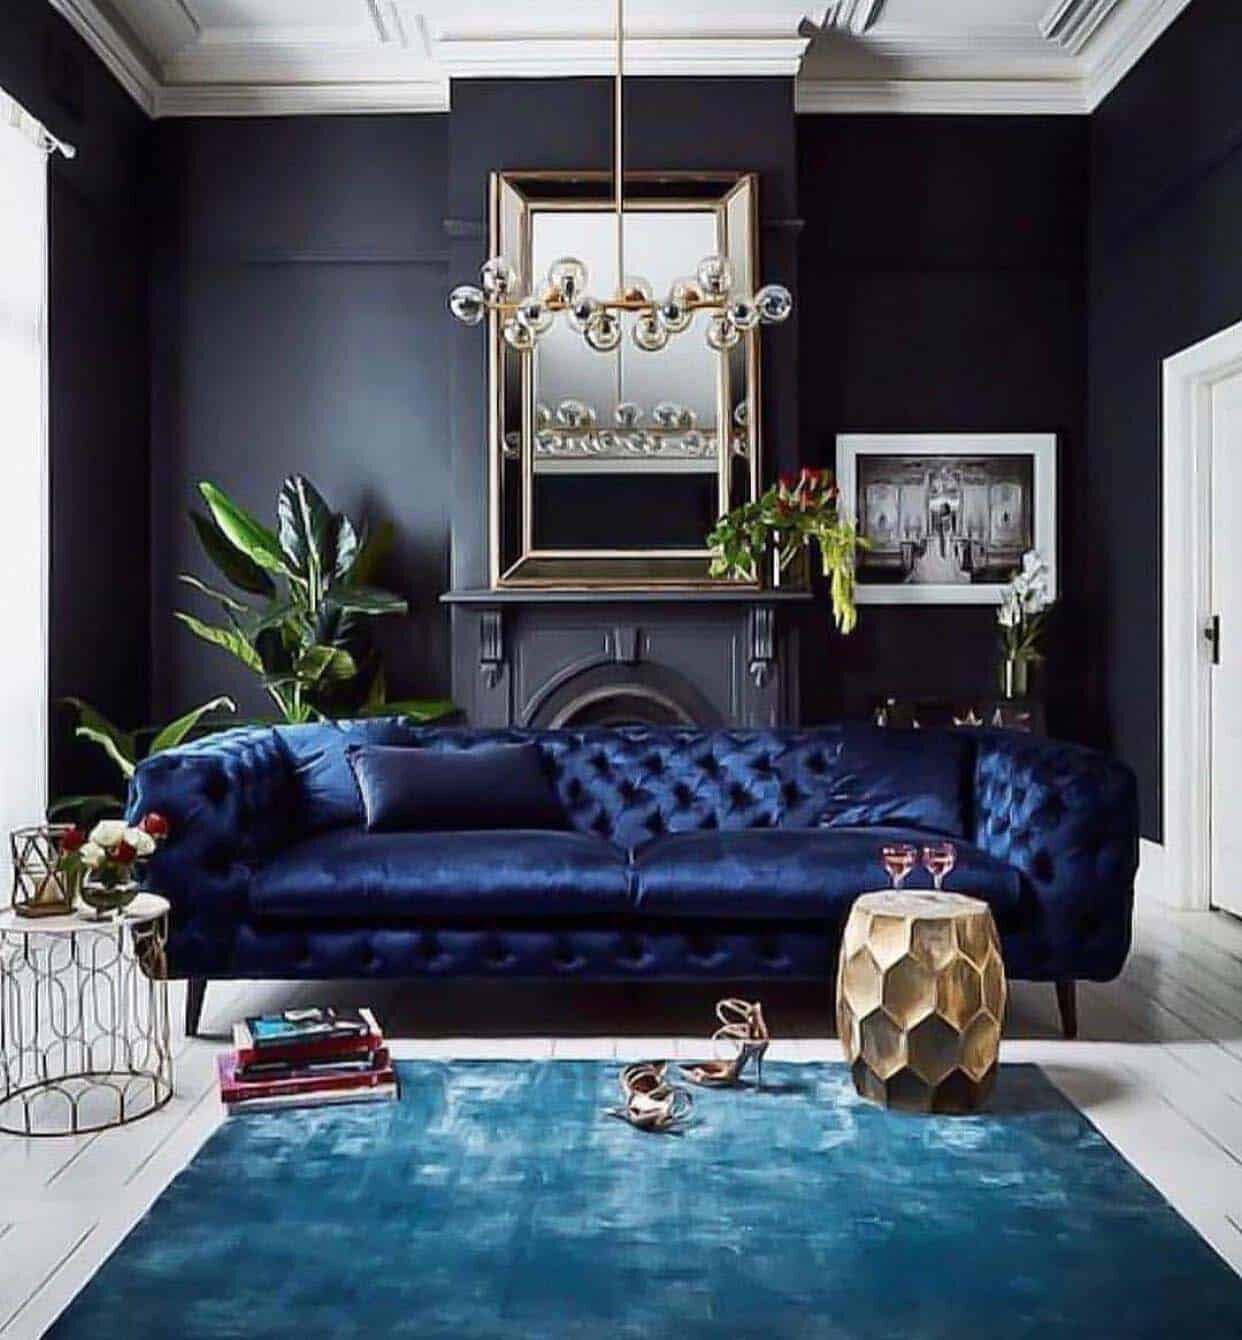 Gorgeous-Living-Rooms-With-Black-Walls-04-1-Kindesign.jpg